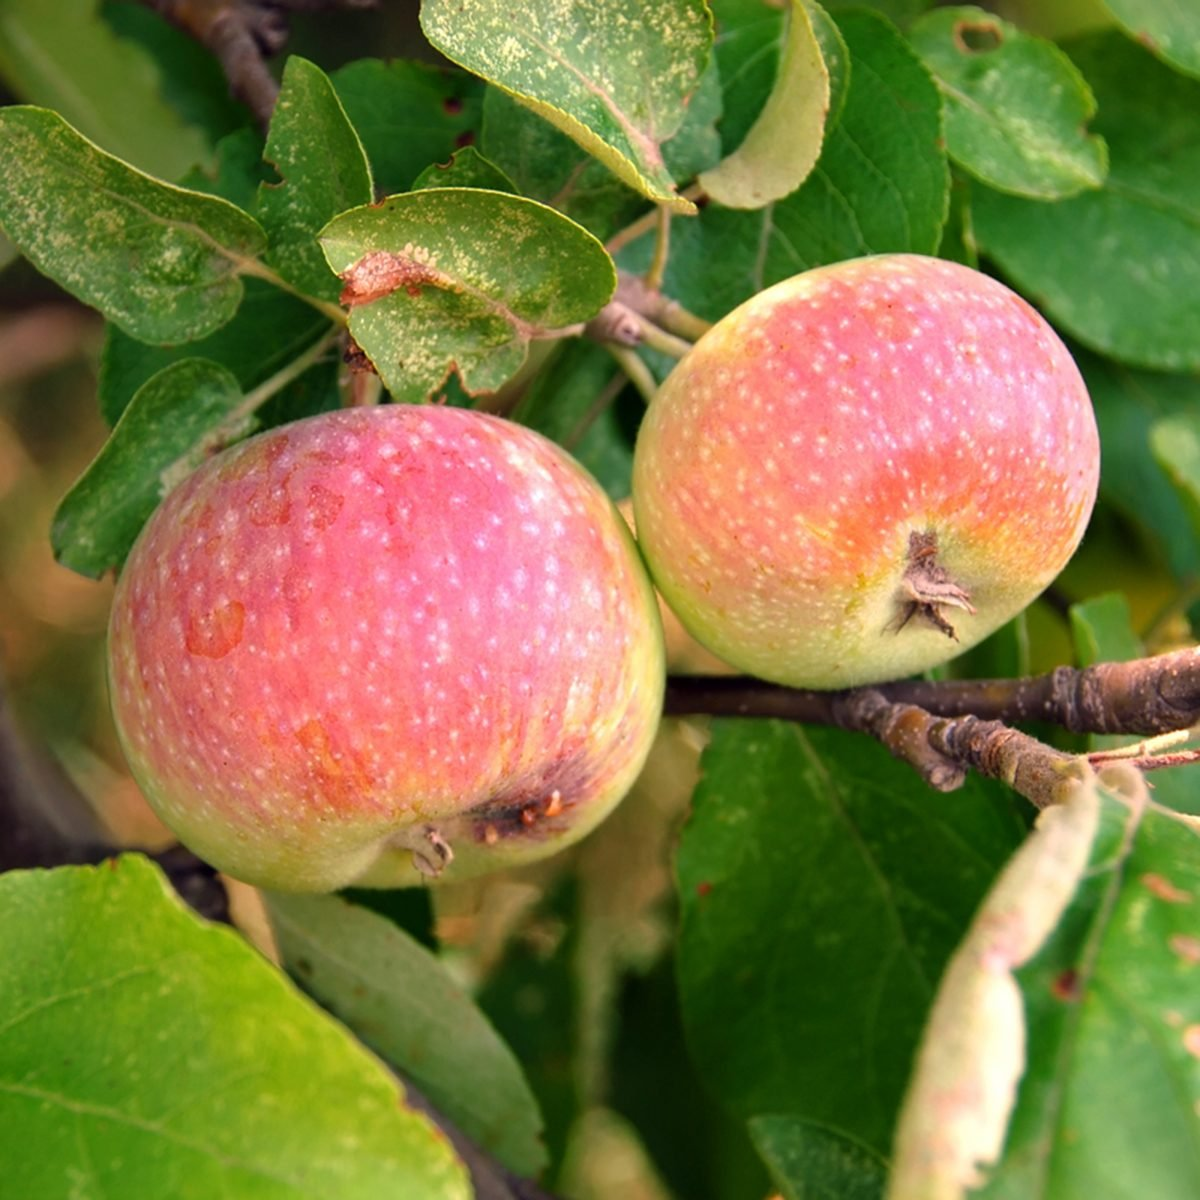 Apples on the tree in the summer just weeks before harvest.